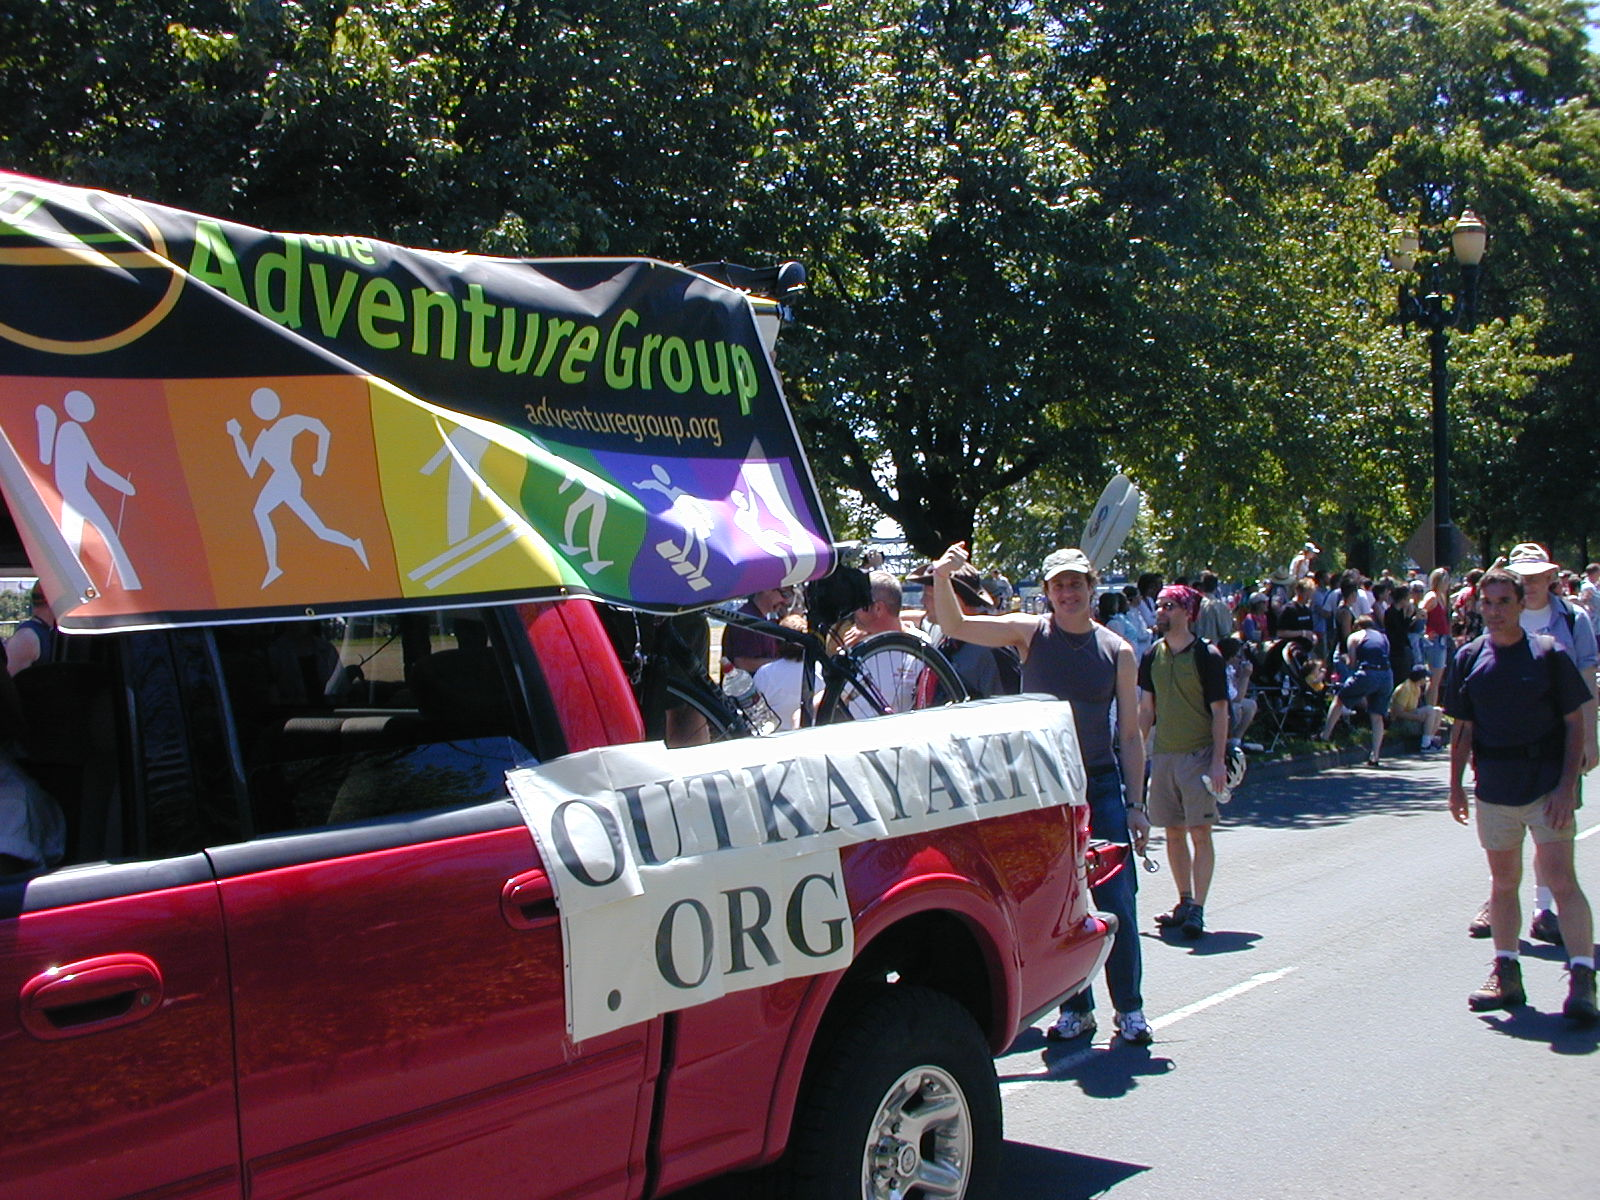 The Adventure Group Outdoors club for the Gay and Lesbian community of ...